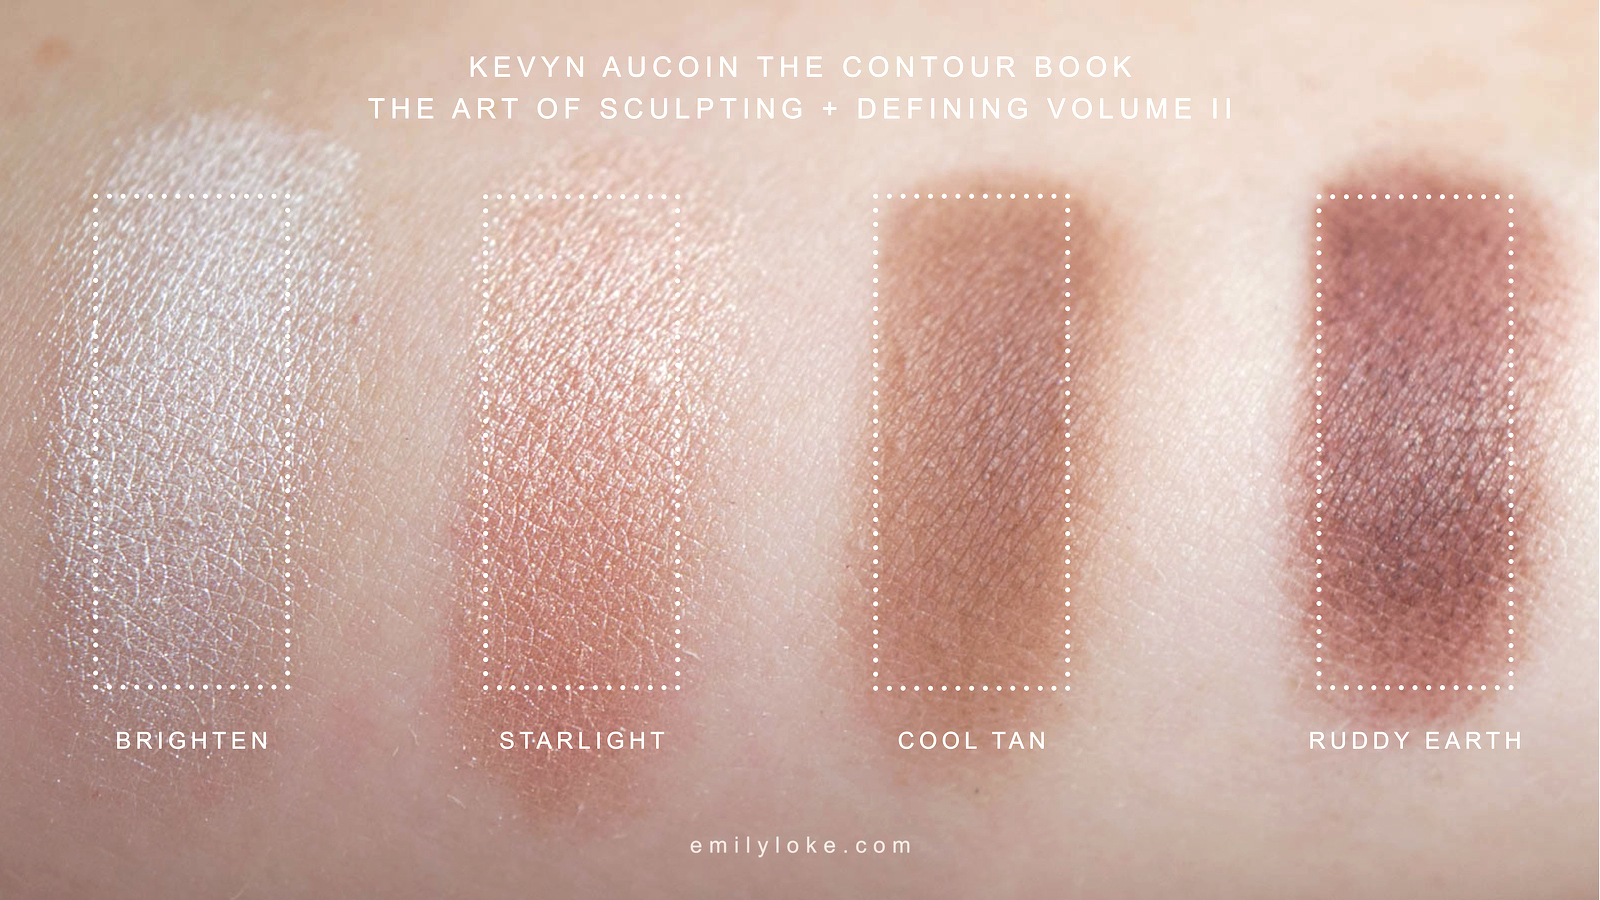 Kevyn Aucoin Contour Book Vol 2 Swatches 2